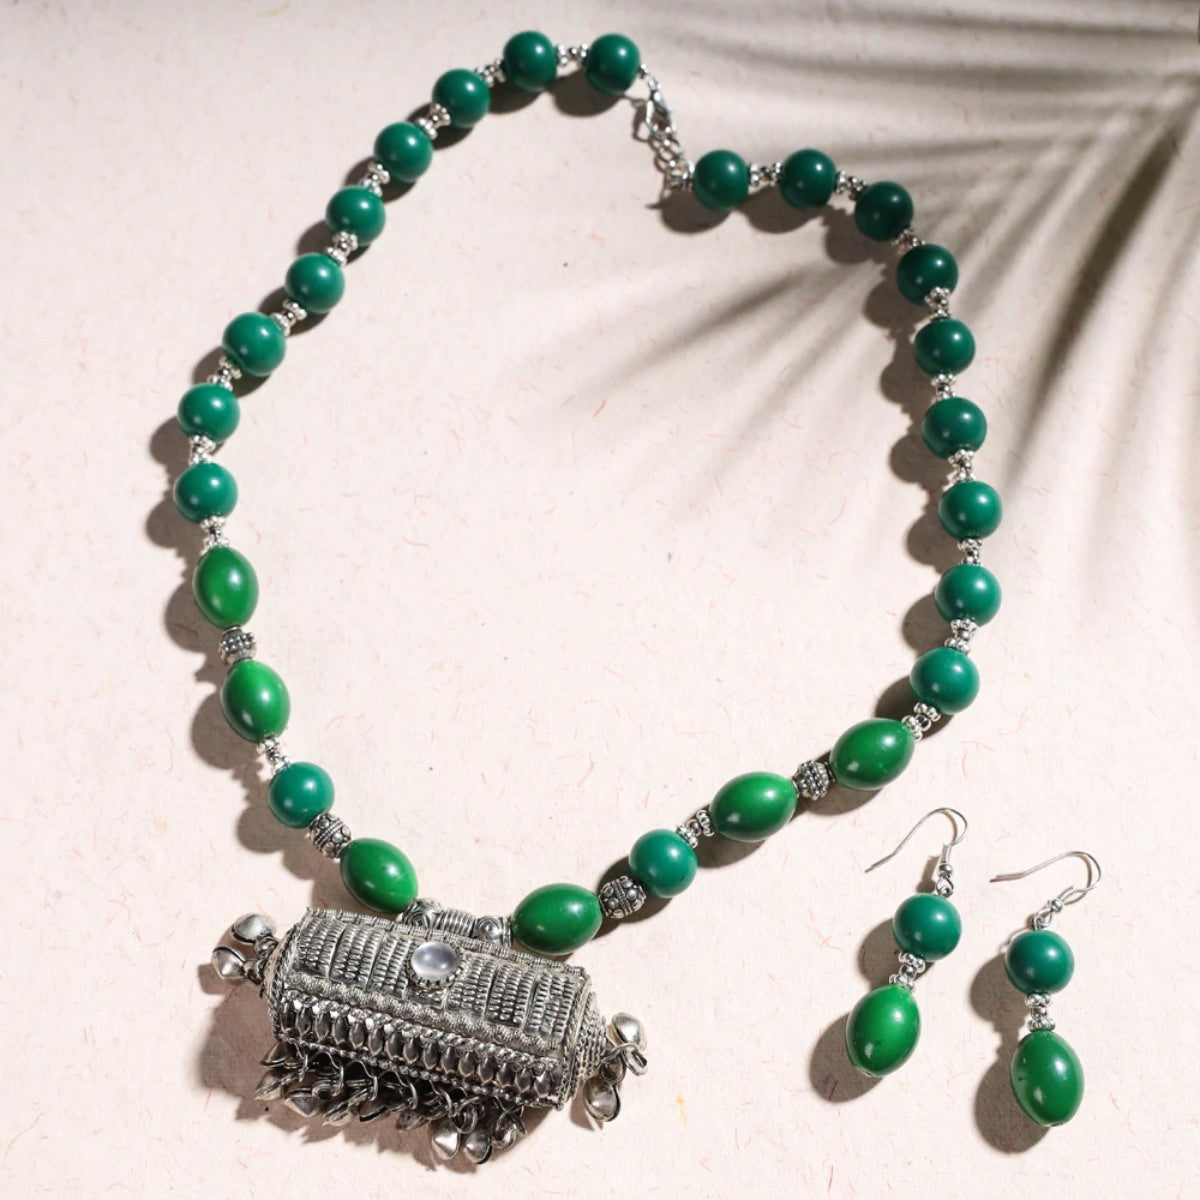 German Silver Oxidised Jewelry